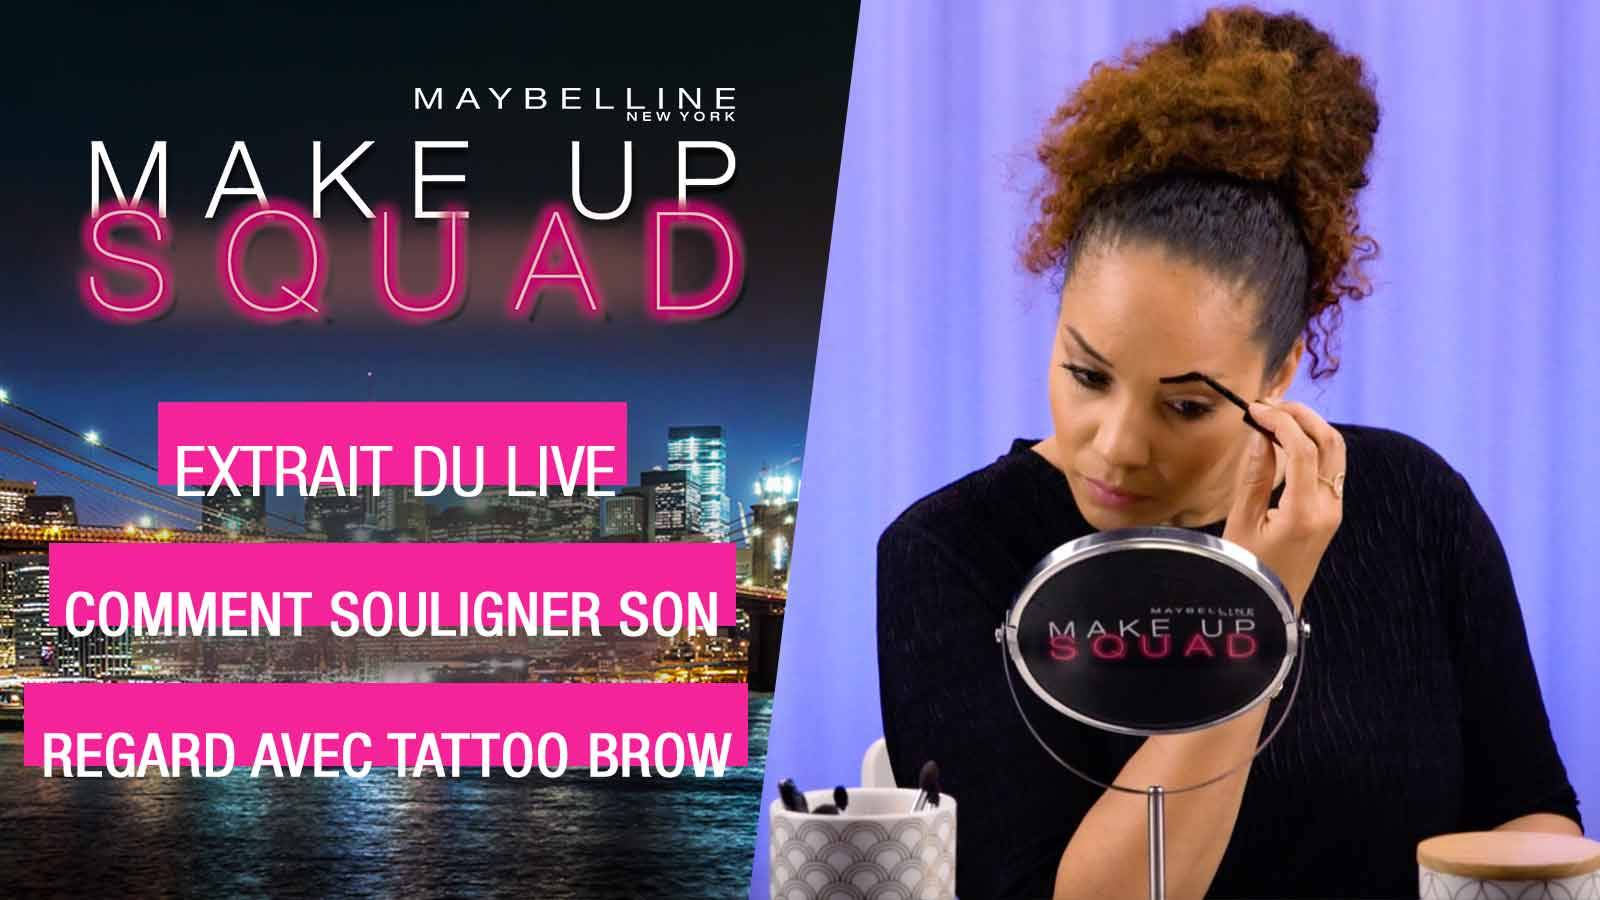 maybelline-makeup-squad-tutoriel-souligner-son-regard-tattoo-brow-video-16x9